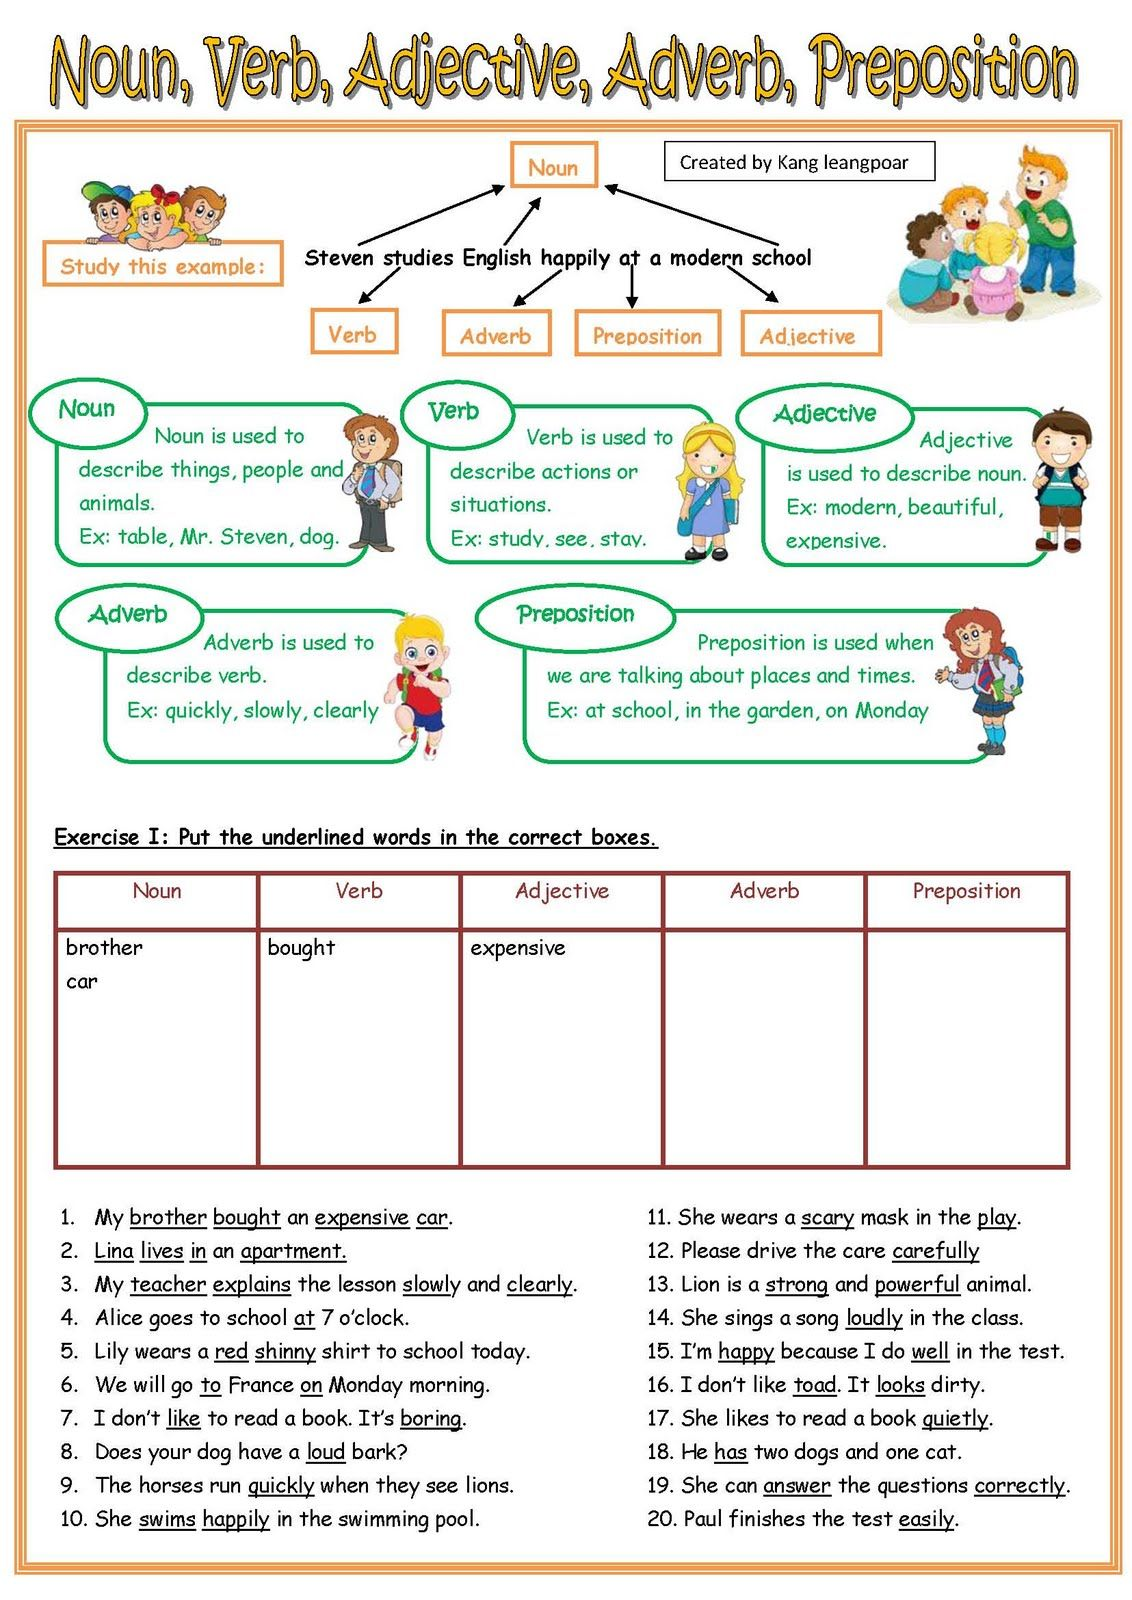 Worksheets Noun Verb Adjective Adverb Worksheet noun verb adjective adverb pre page 1 jpg english jpg